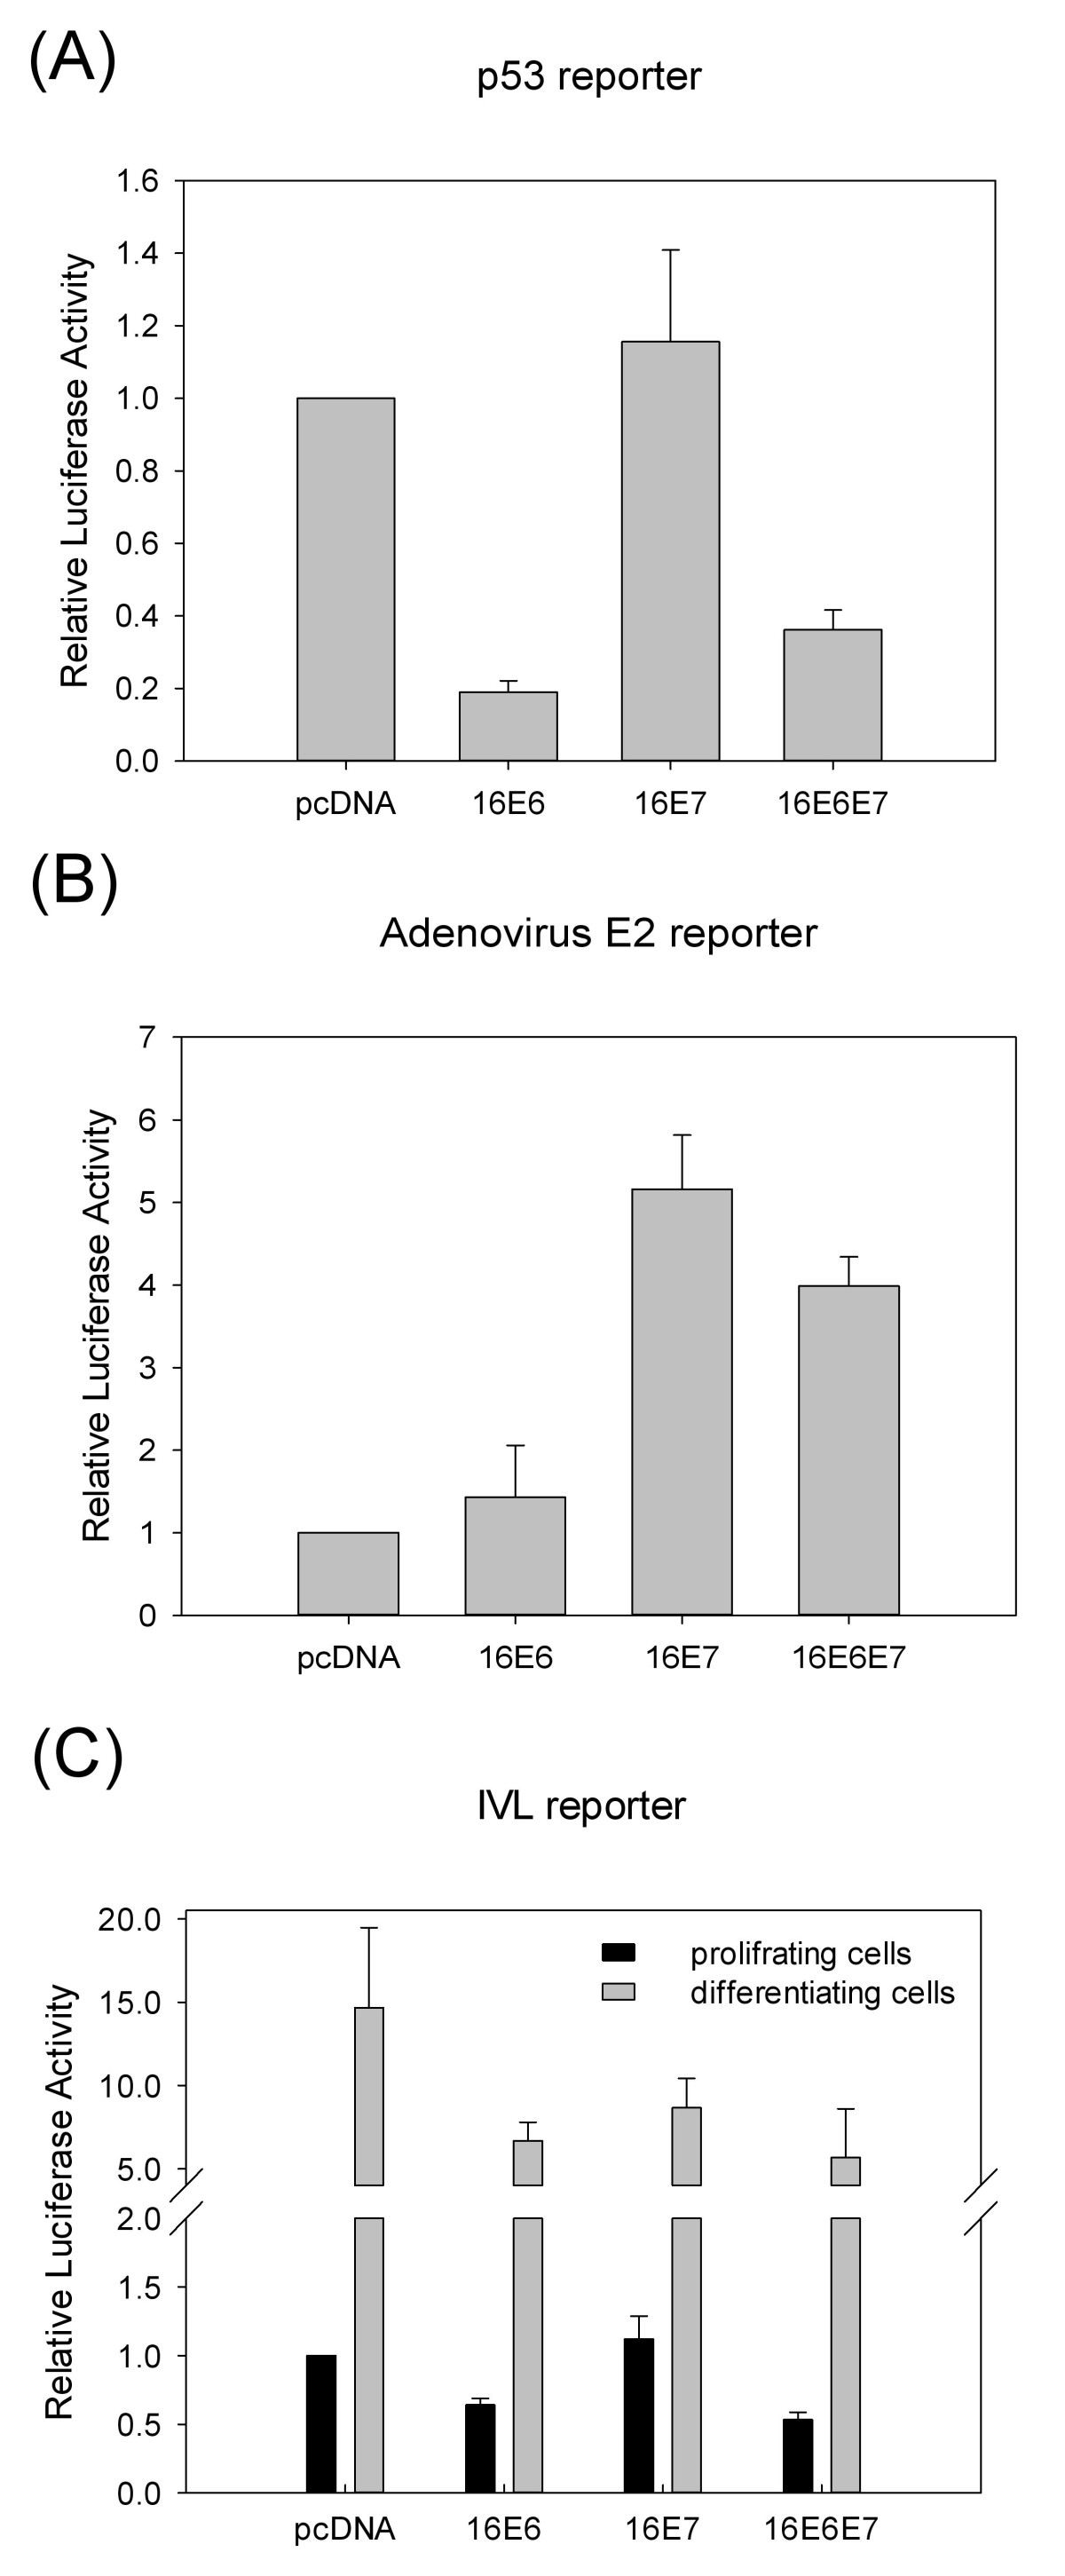 https://static-content.springer.com/image/art%3A10.1186%2F1743-422X-9-36/MediaObjects/12985_2011_Article_1701_Fig4_HTML.jpg